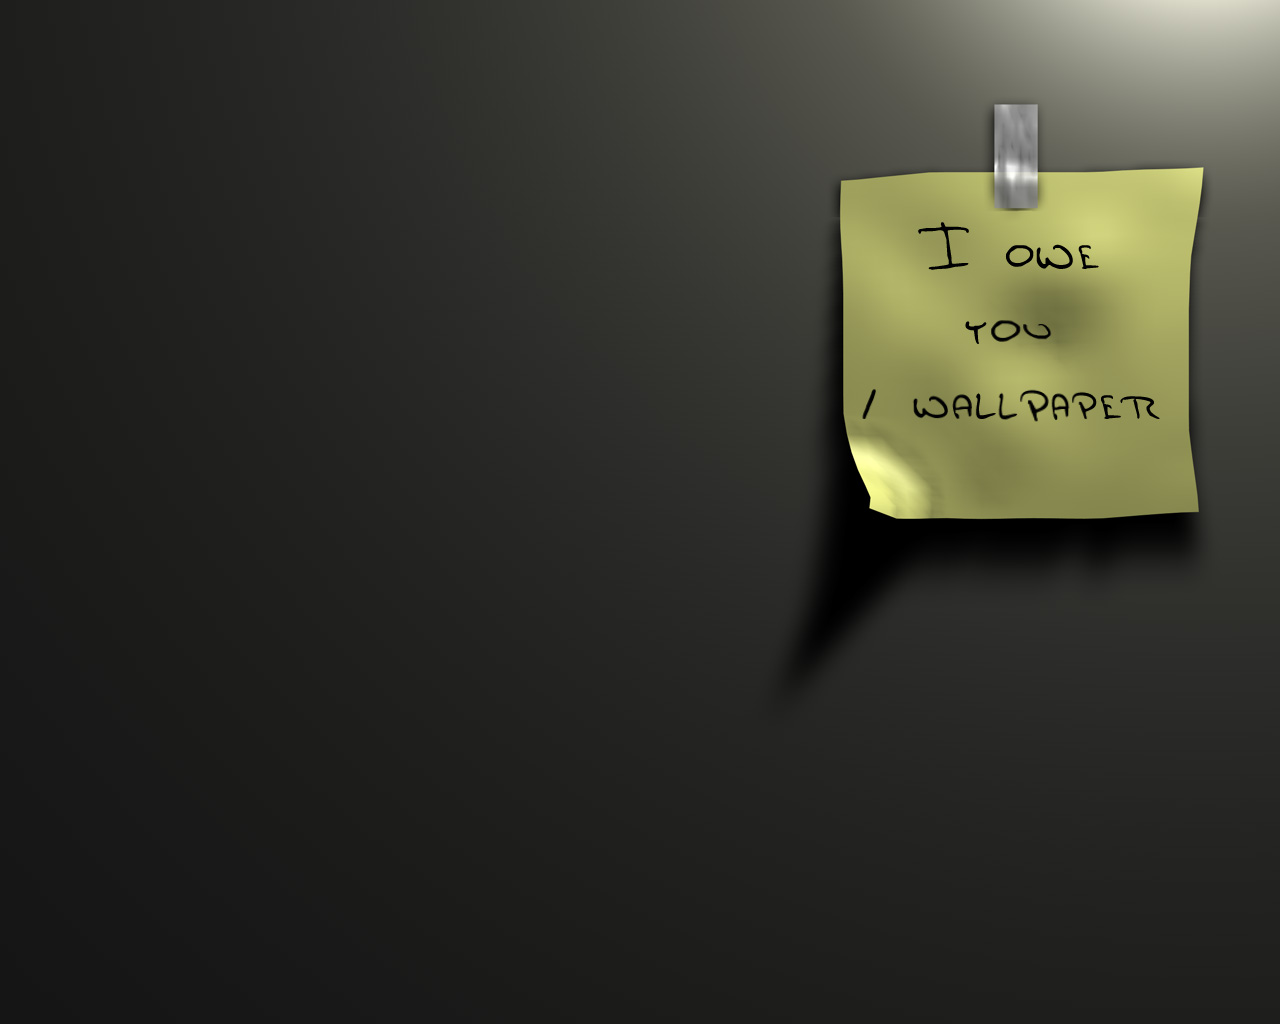 Very Funny HD Backgrounds funny backgrounds backgrounds for desktop 1280x1024